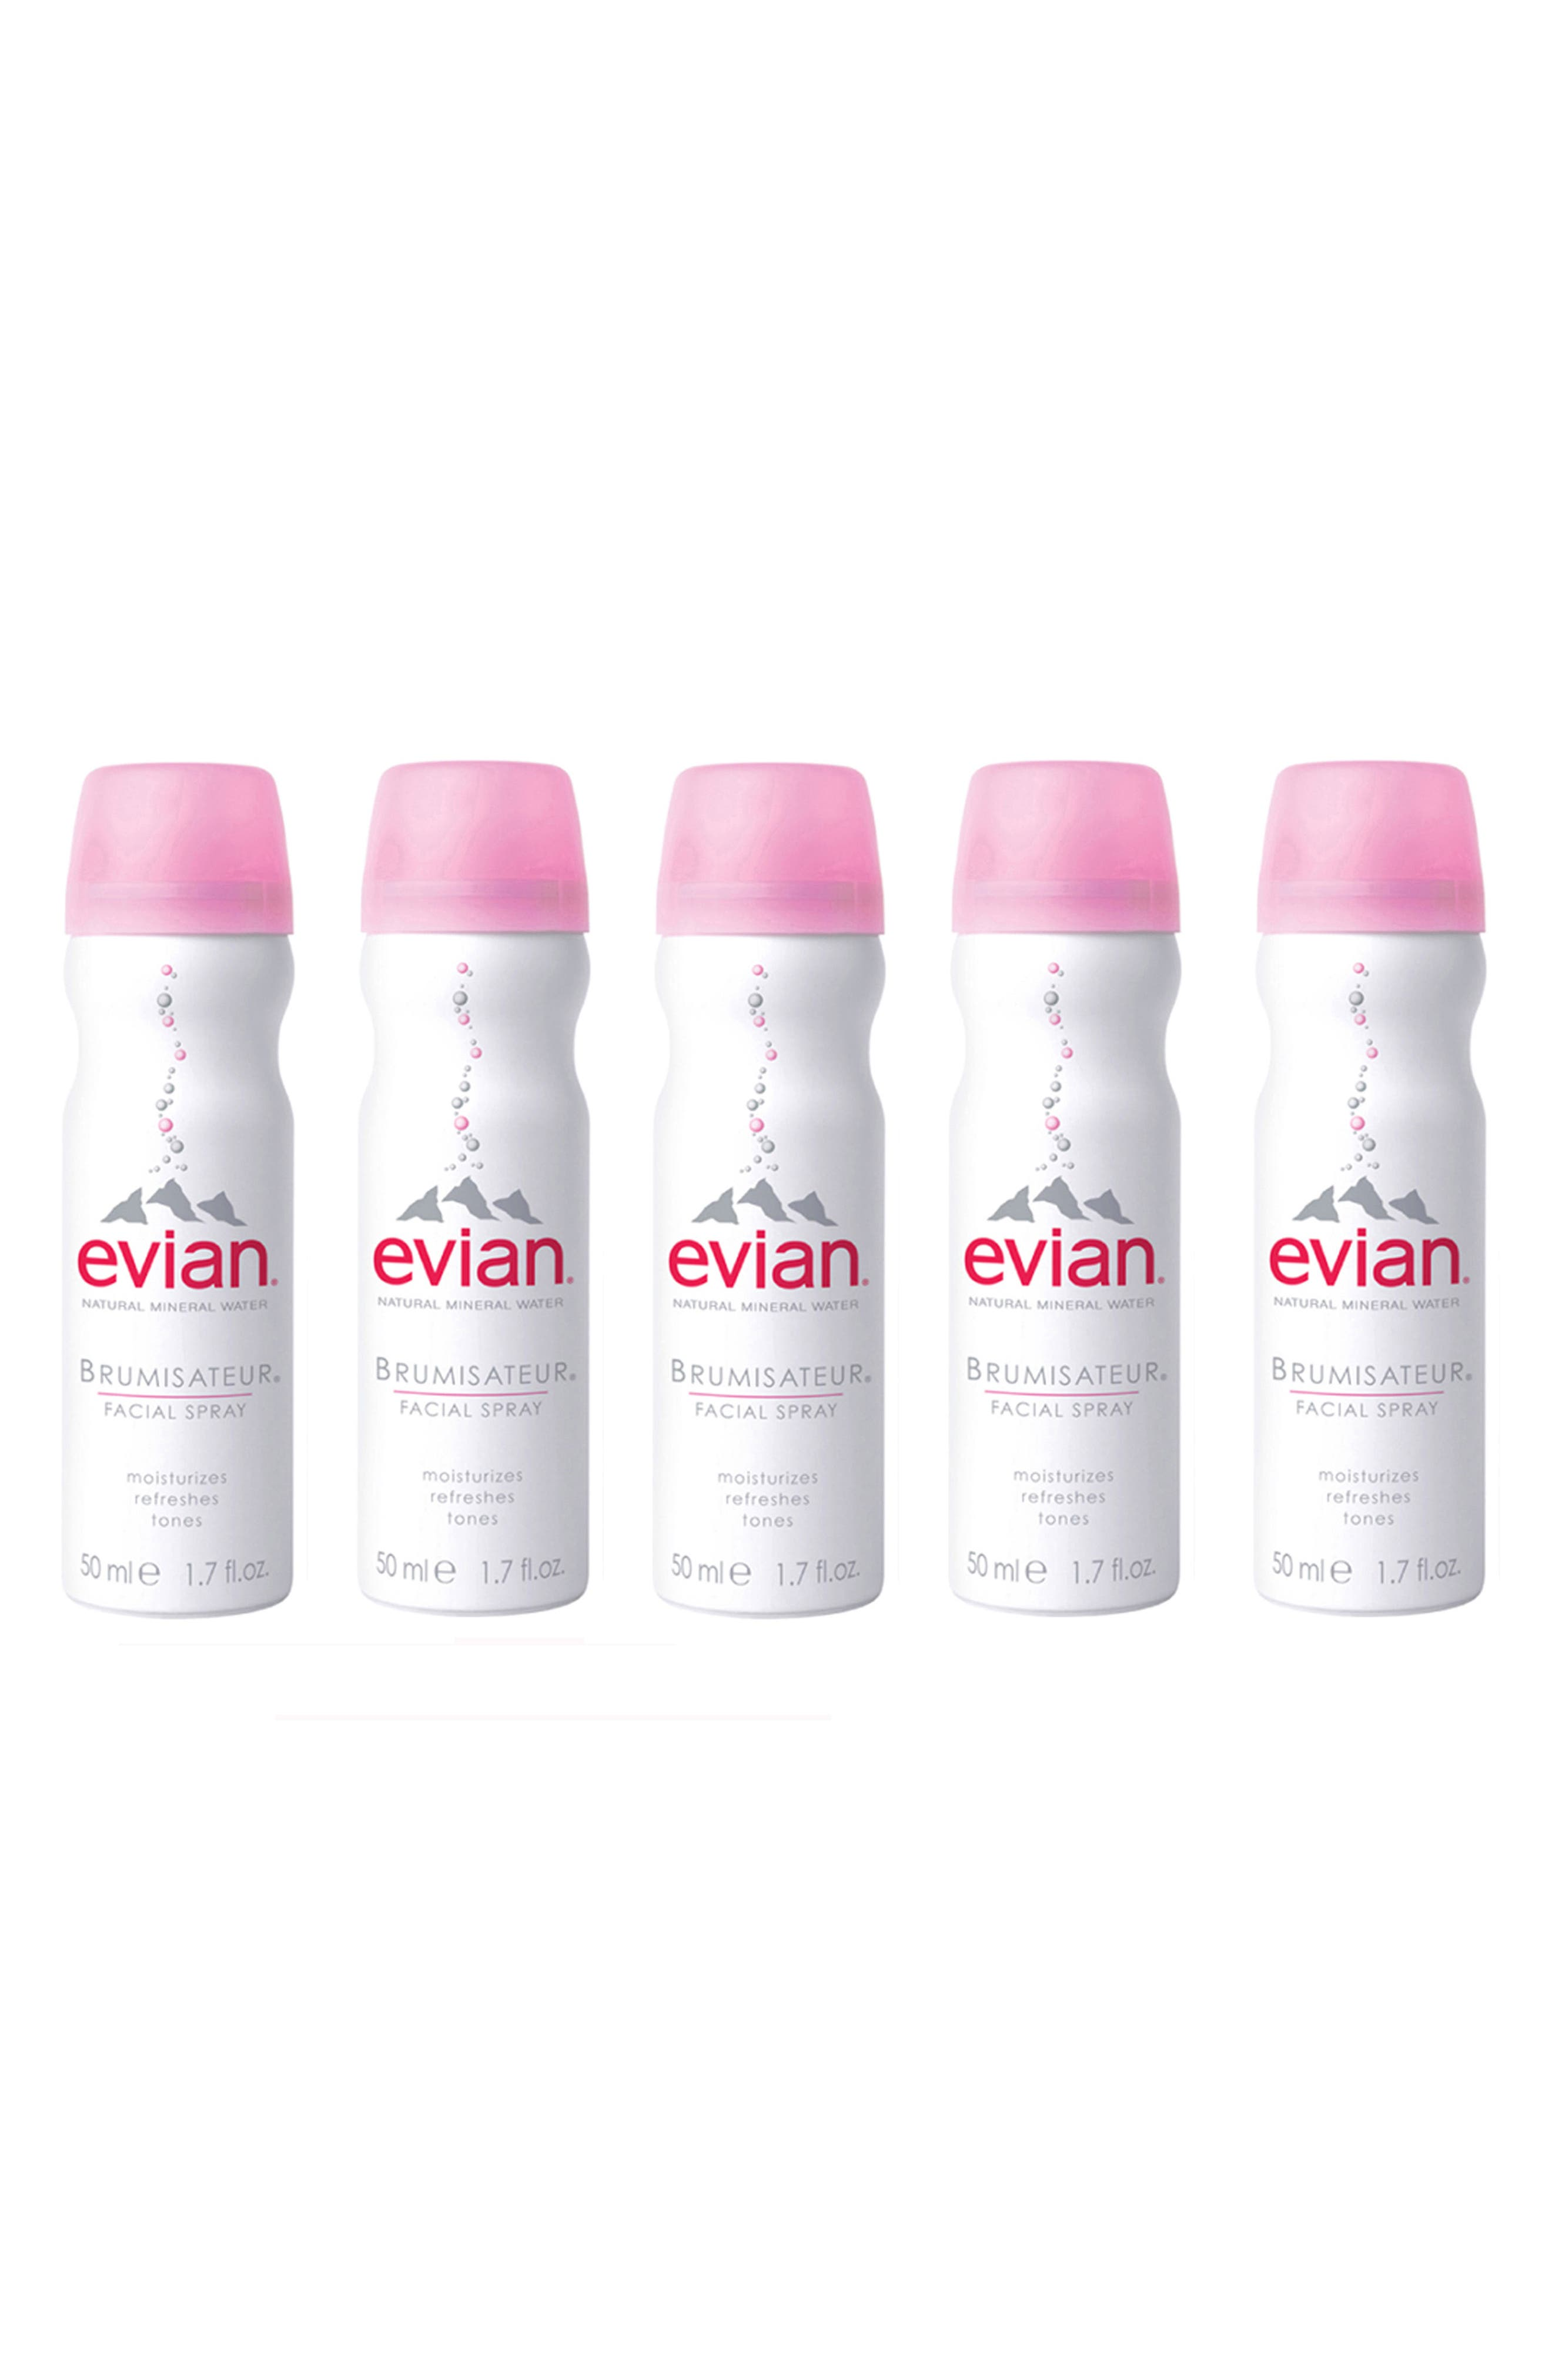 Facial Water Spray Deluxe Mini Travel Set,                             Main thumbnail 1, color,                             NO COLOR